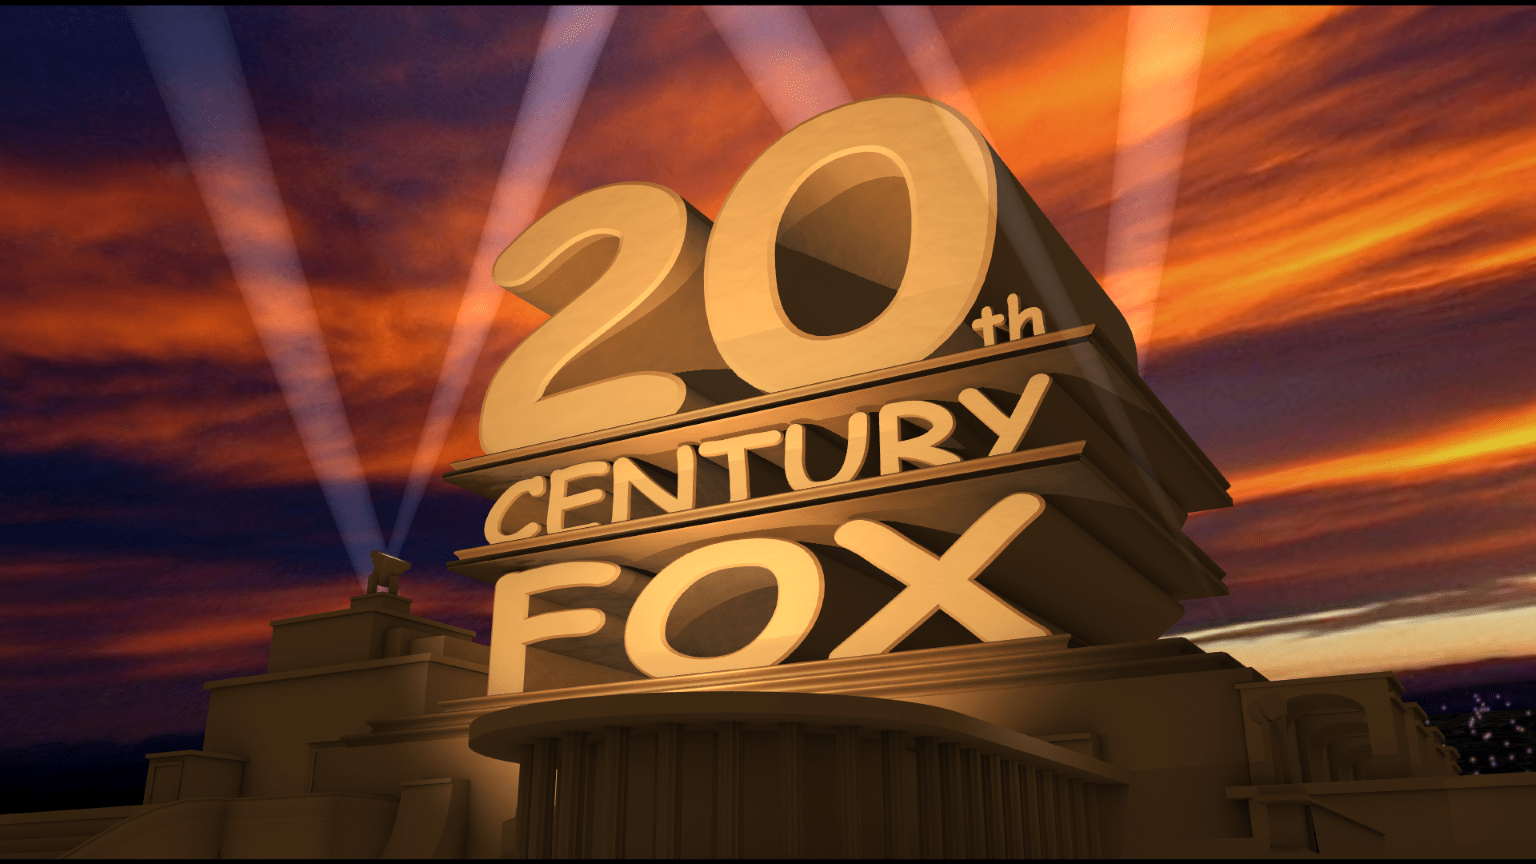 Will 20th Century Fox Redeem Itself From The Flop Find Out In The